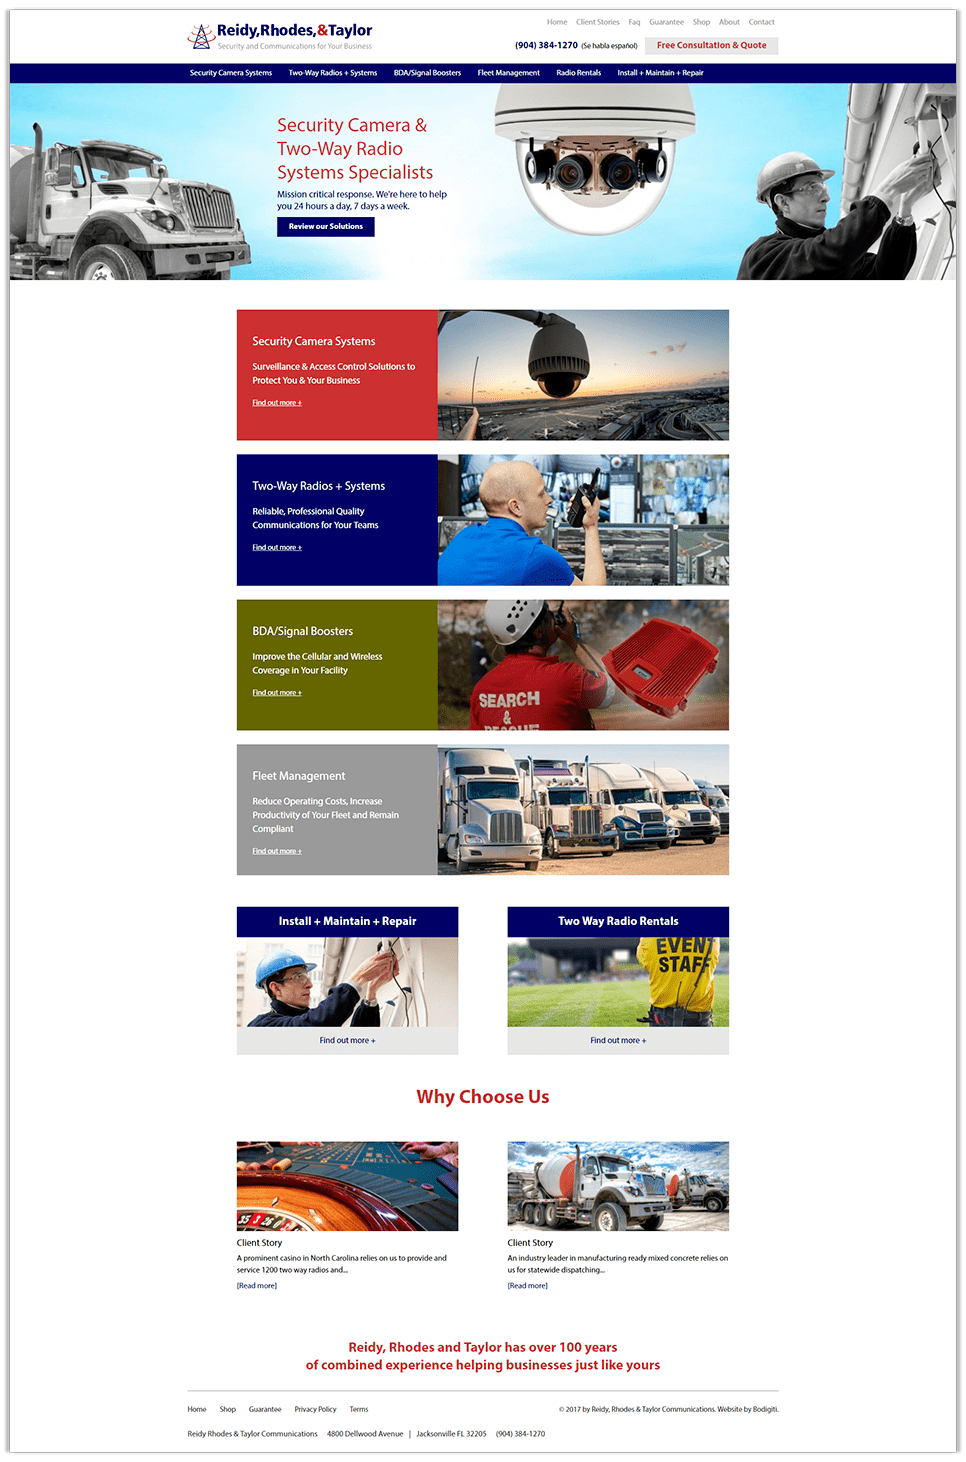 RR&T's full homepage design, specialists in security camera systems and two way radio communications